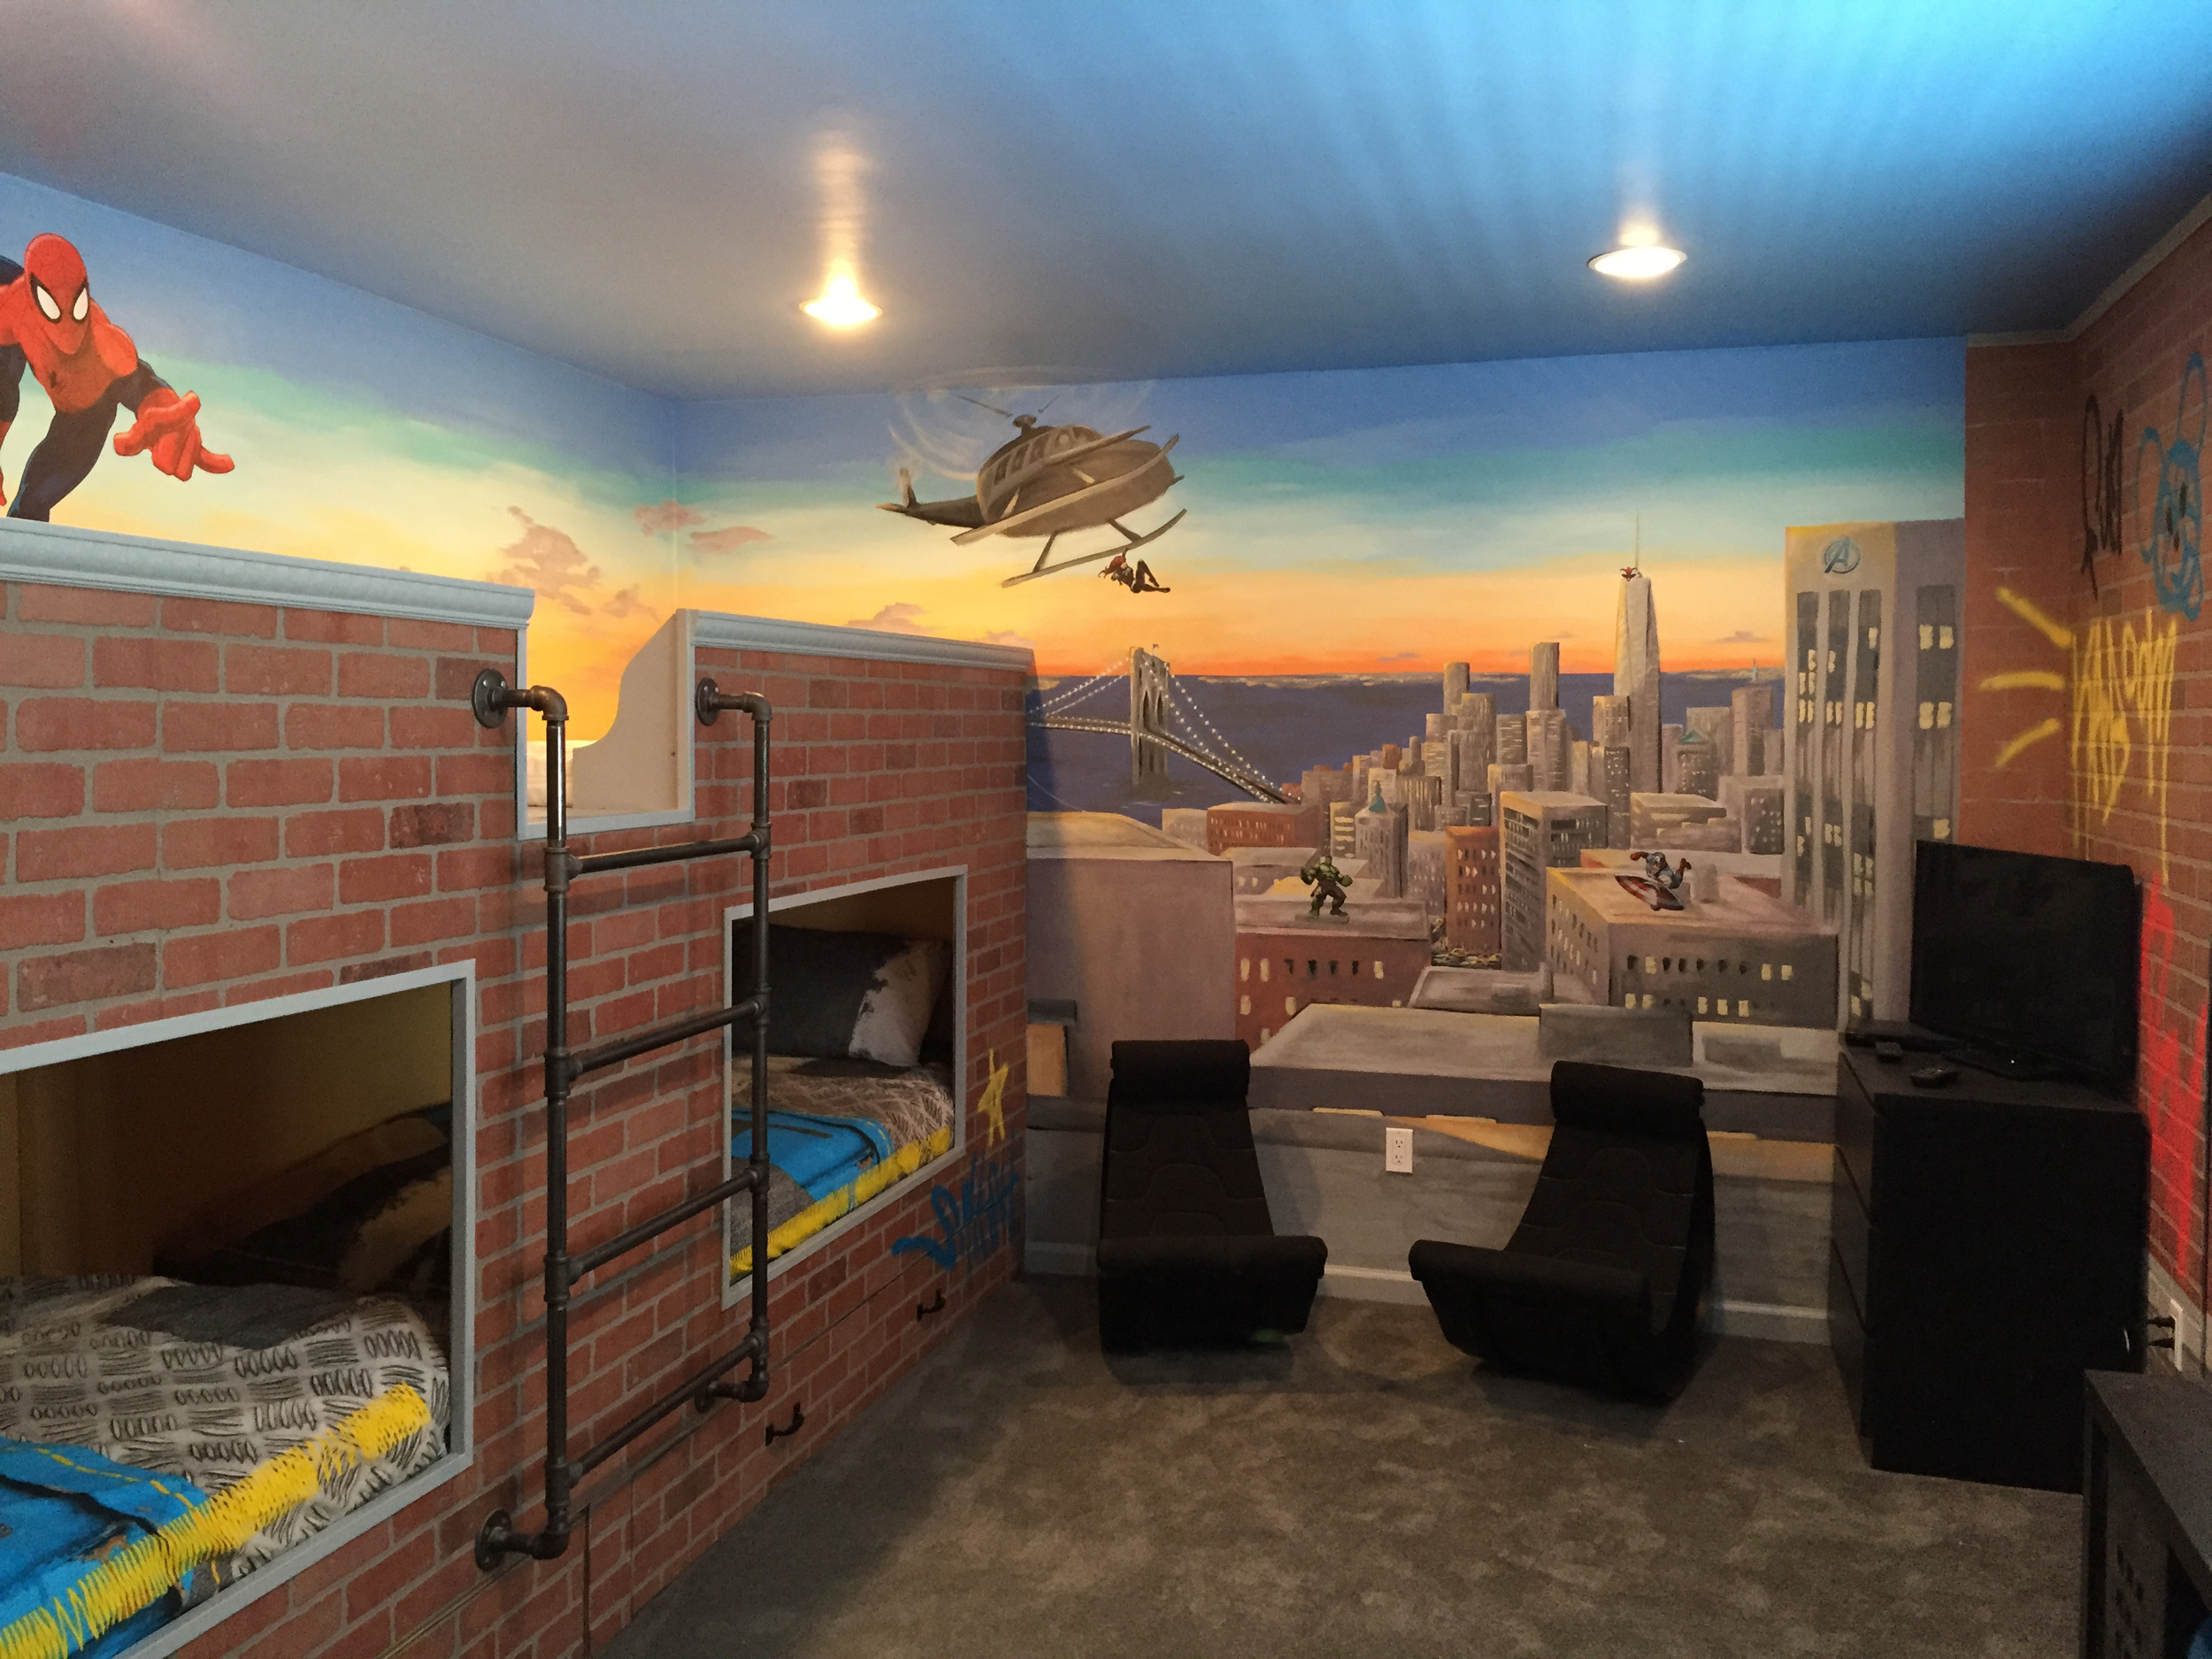 Superheroes Themed NYC Scene with Bunk Beds and Graffiti with Licensed decals